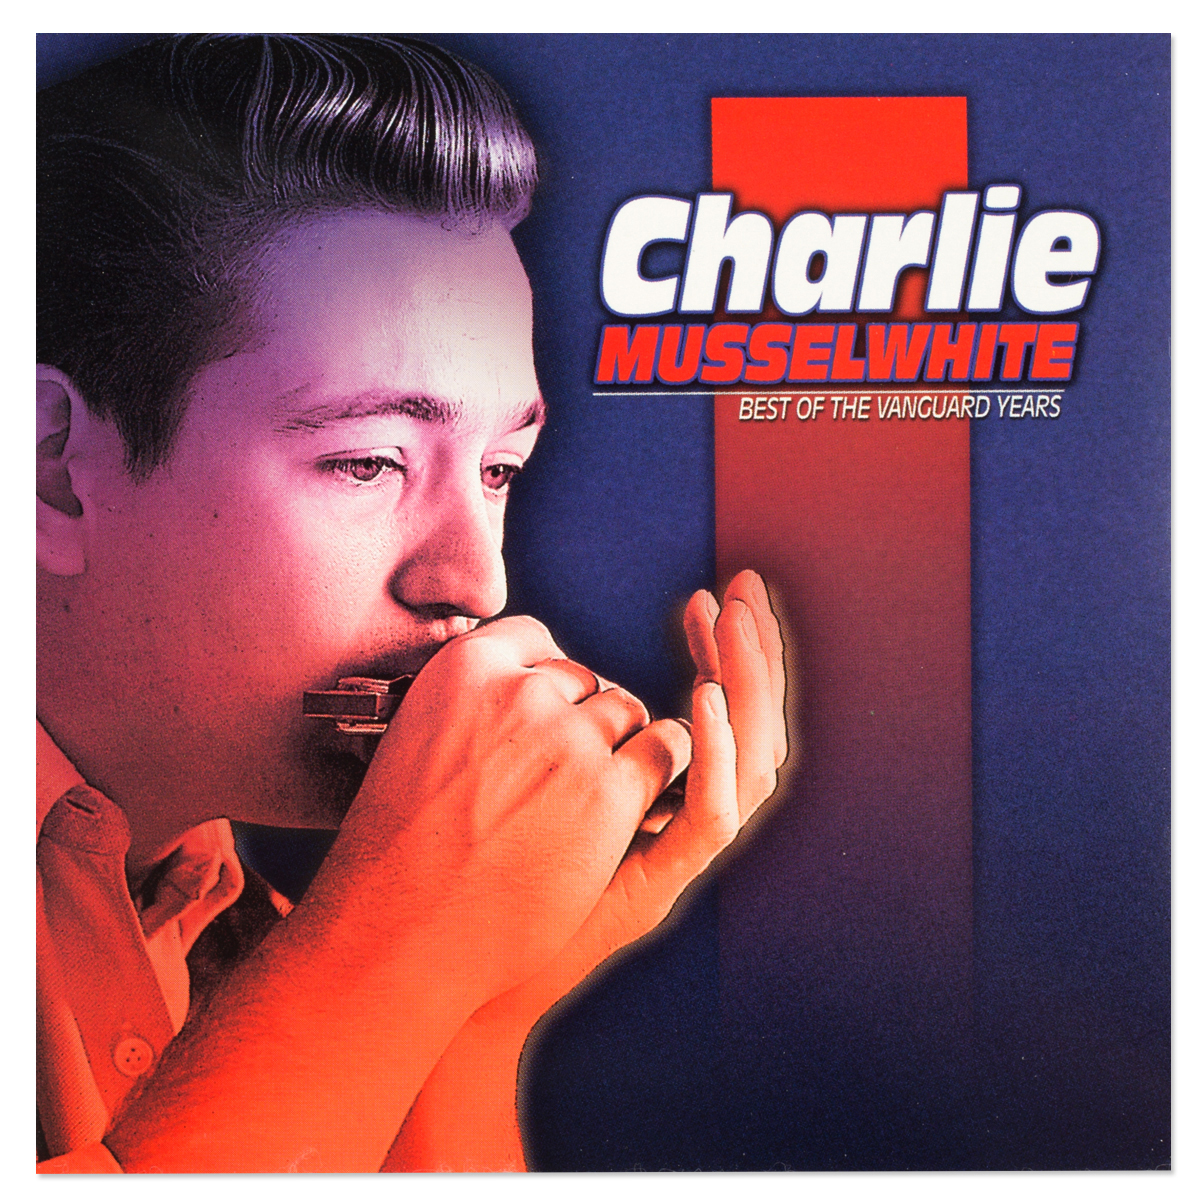 Charlie Musselwhite - Best Of The Vanguard Years CD